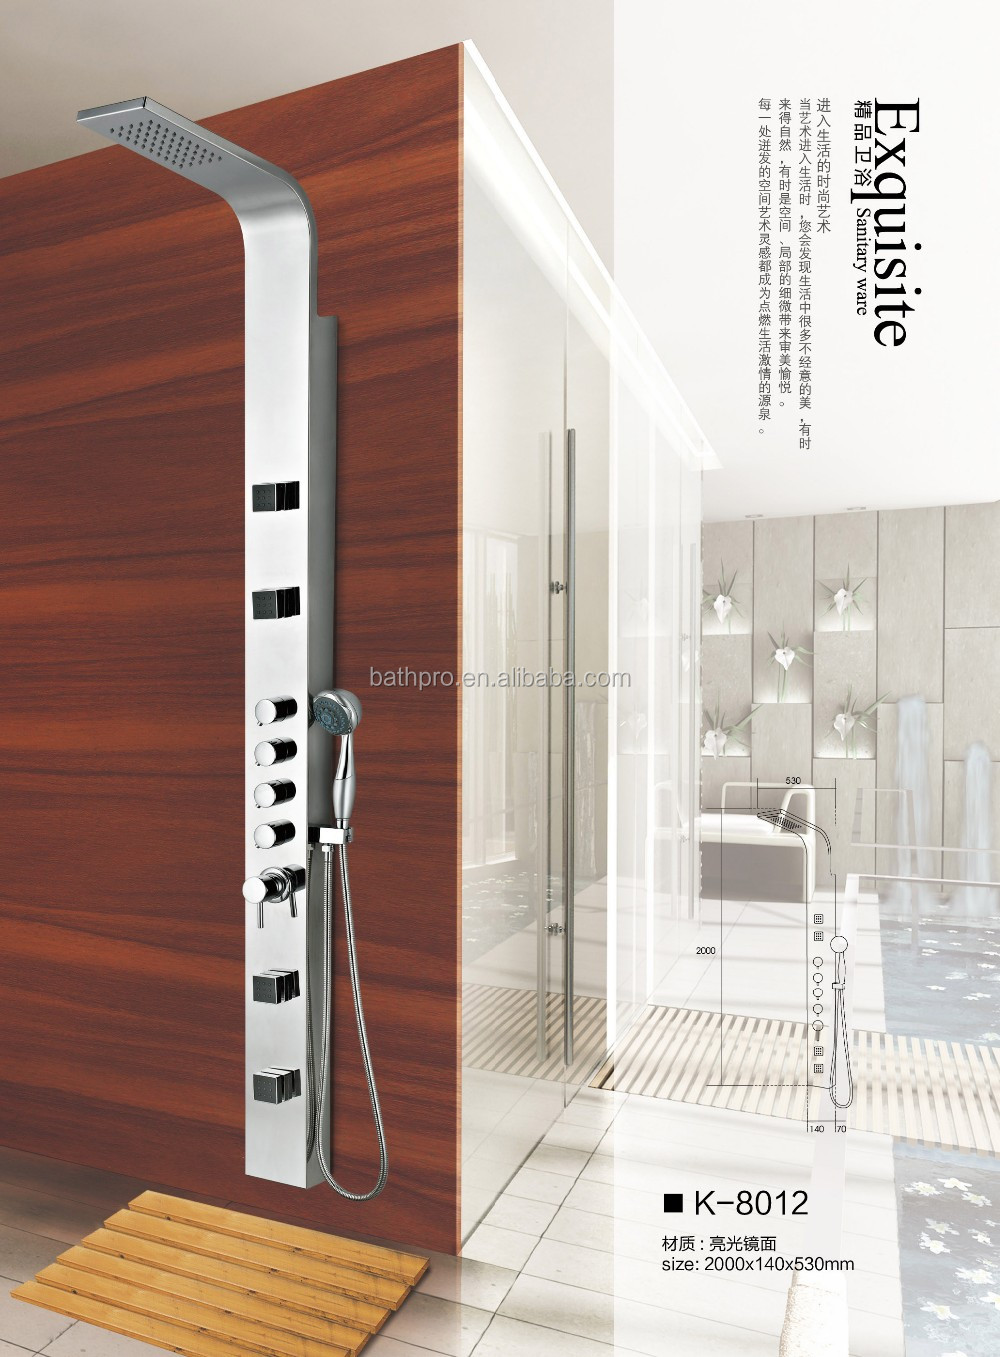 Rain Shower #304 Stainless steel L type shower set with body jet